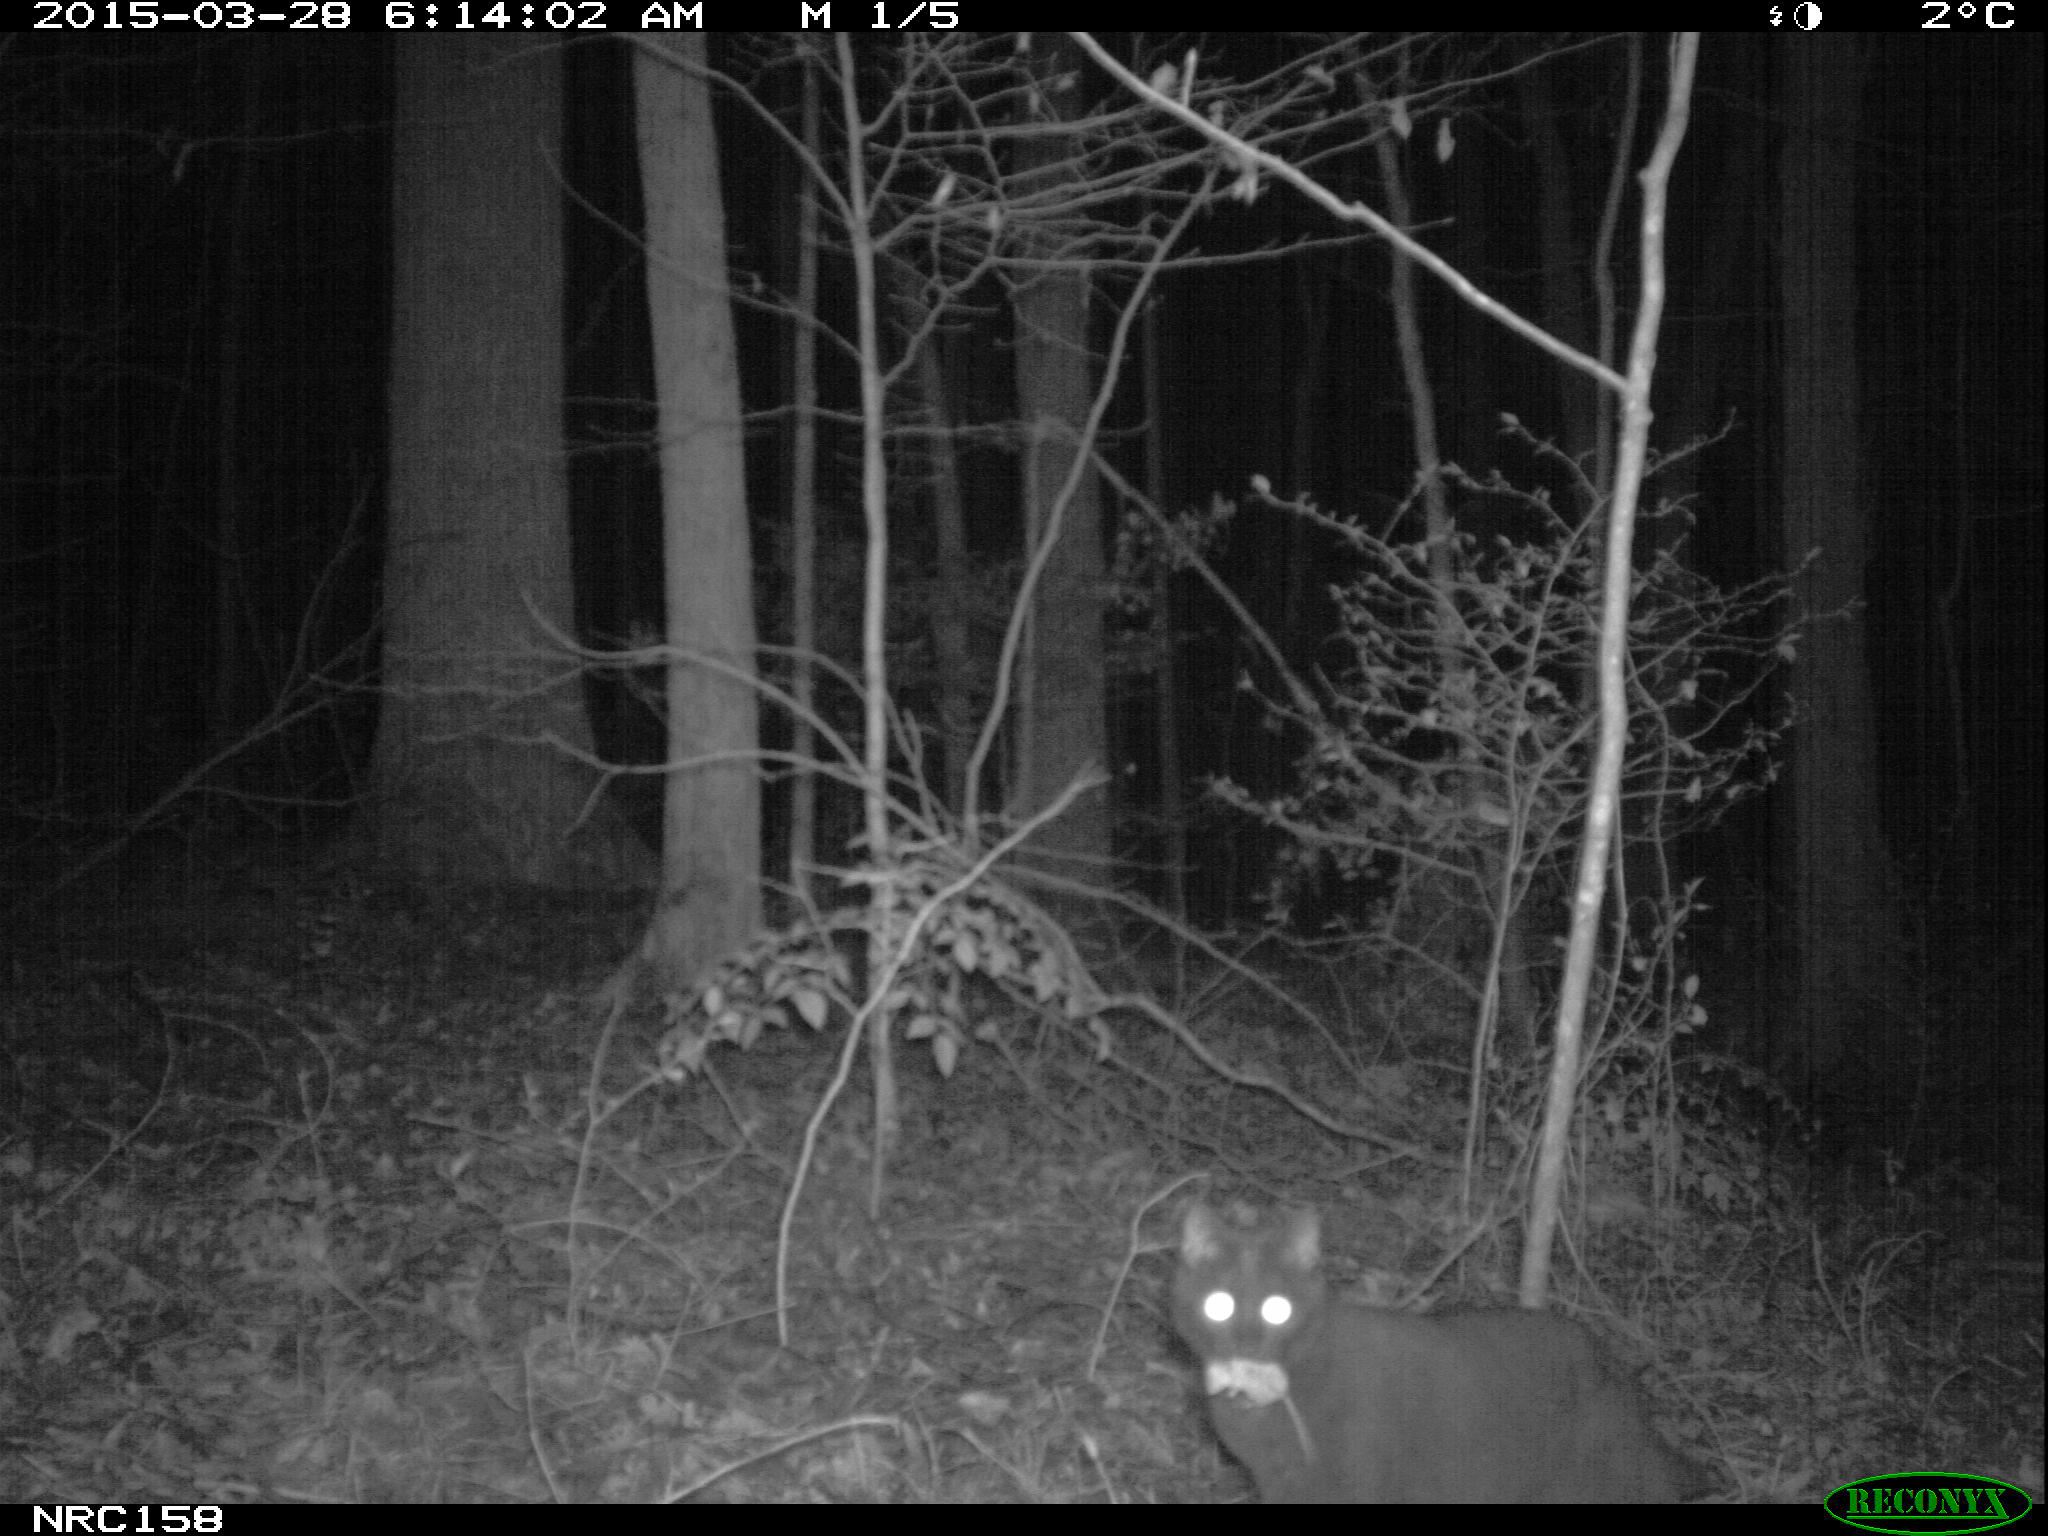 Night image of cat with mouse in its mouth